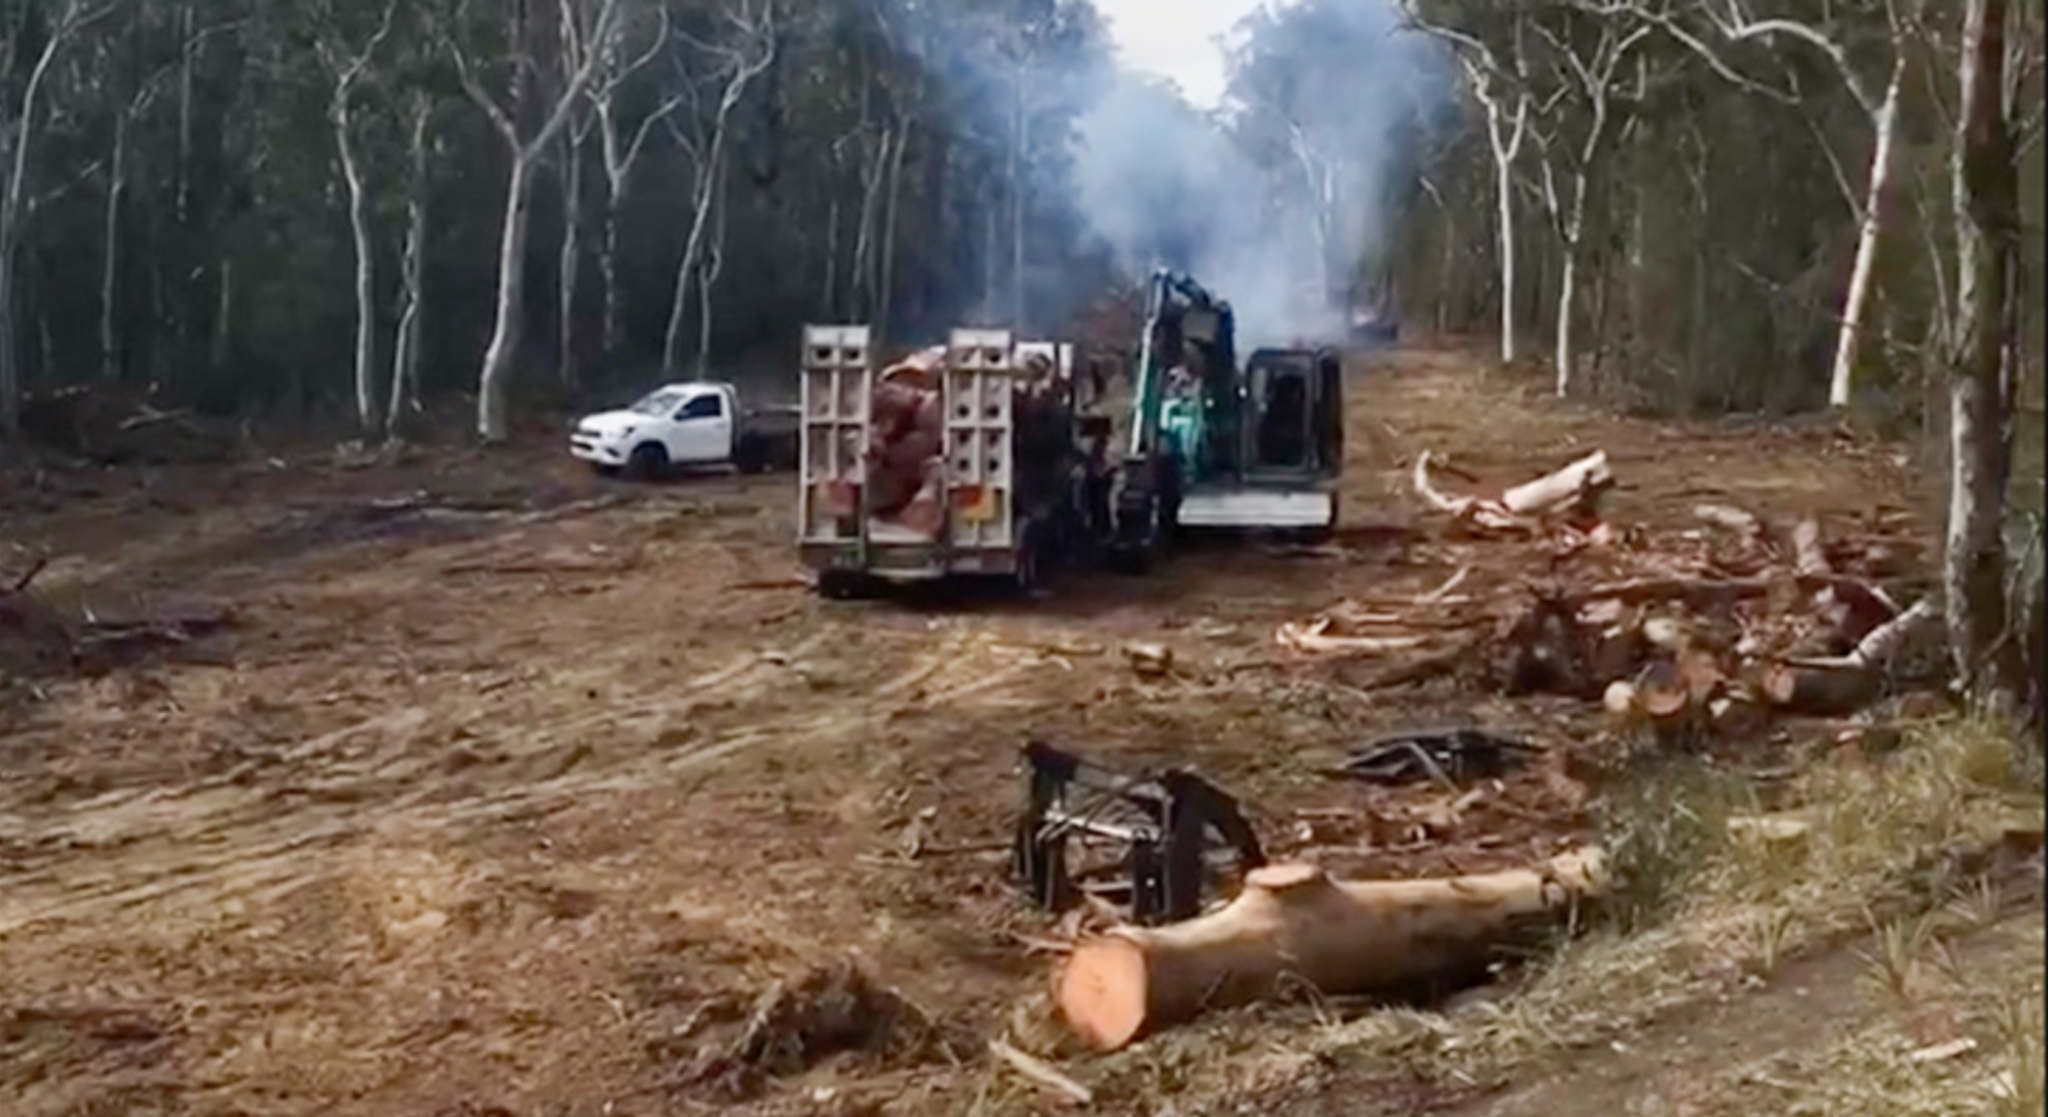 NSW Government bushfire tree clearing rules risk widespread environmental destruction and worsening bushfire risks